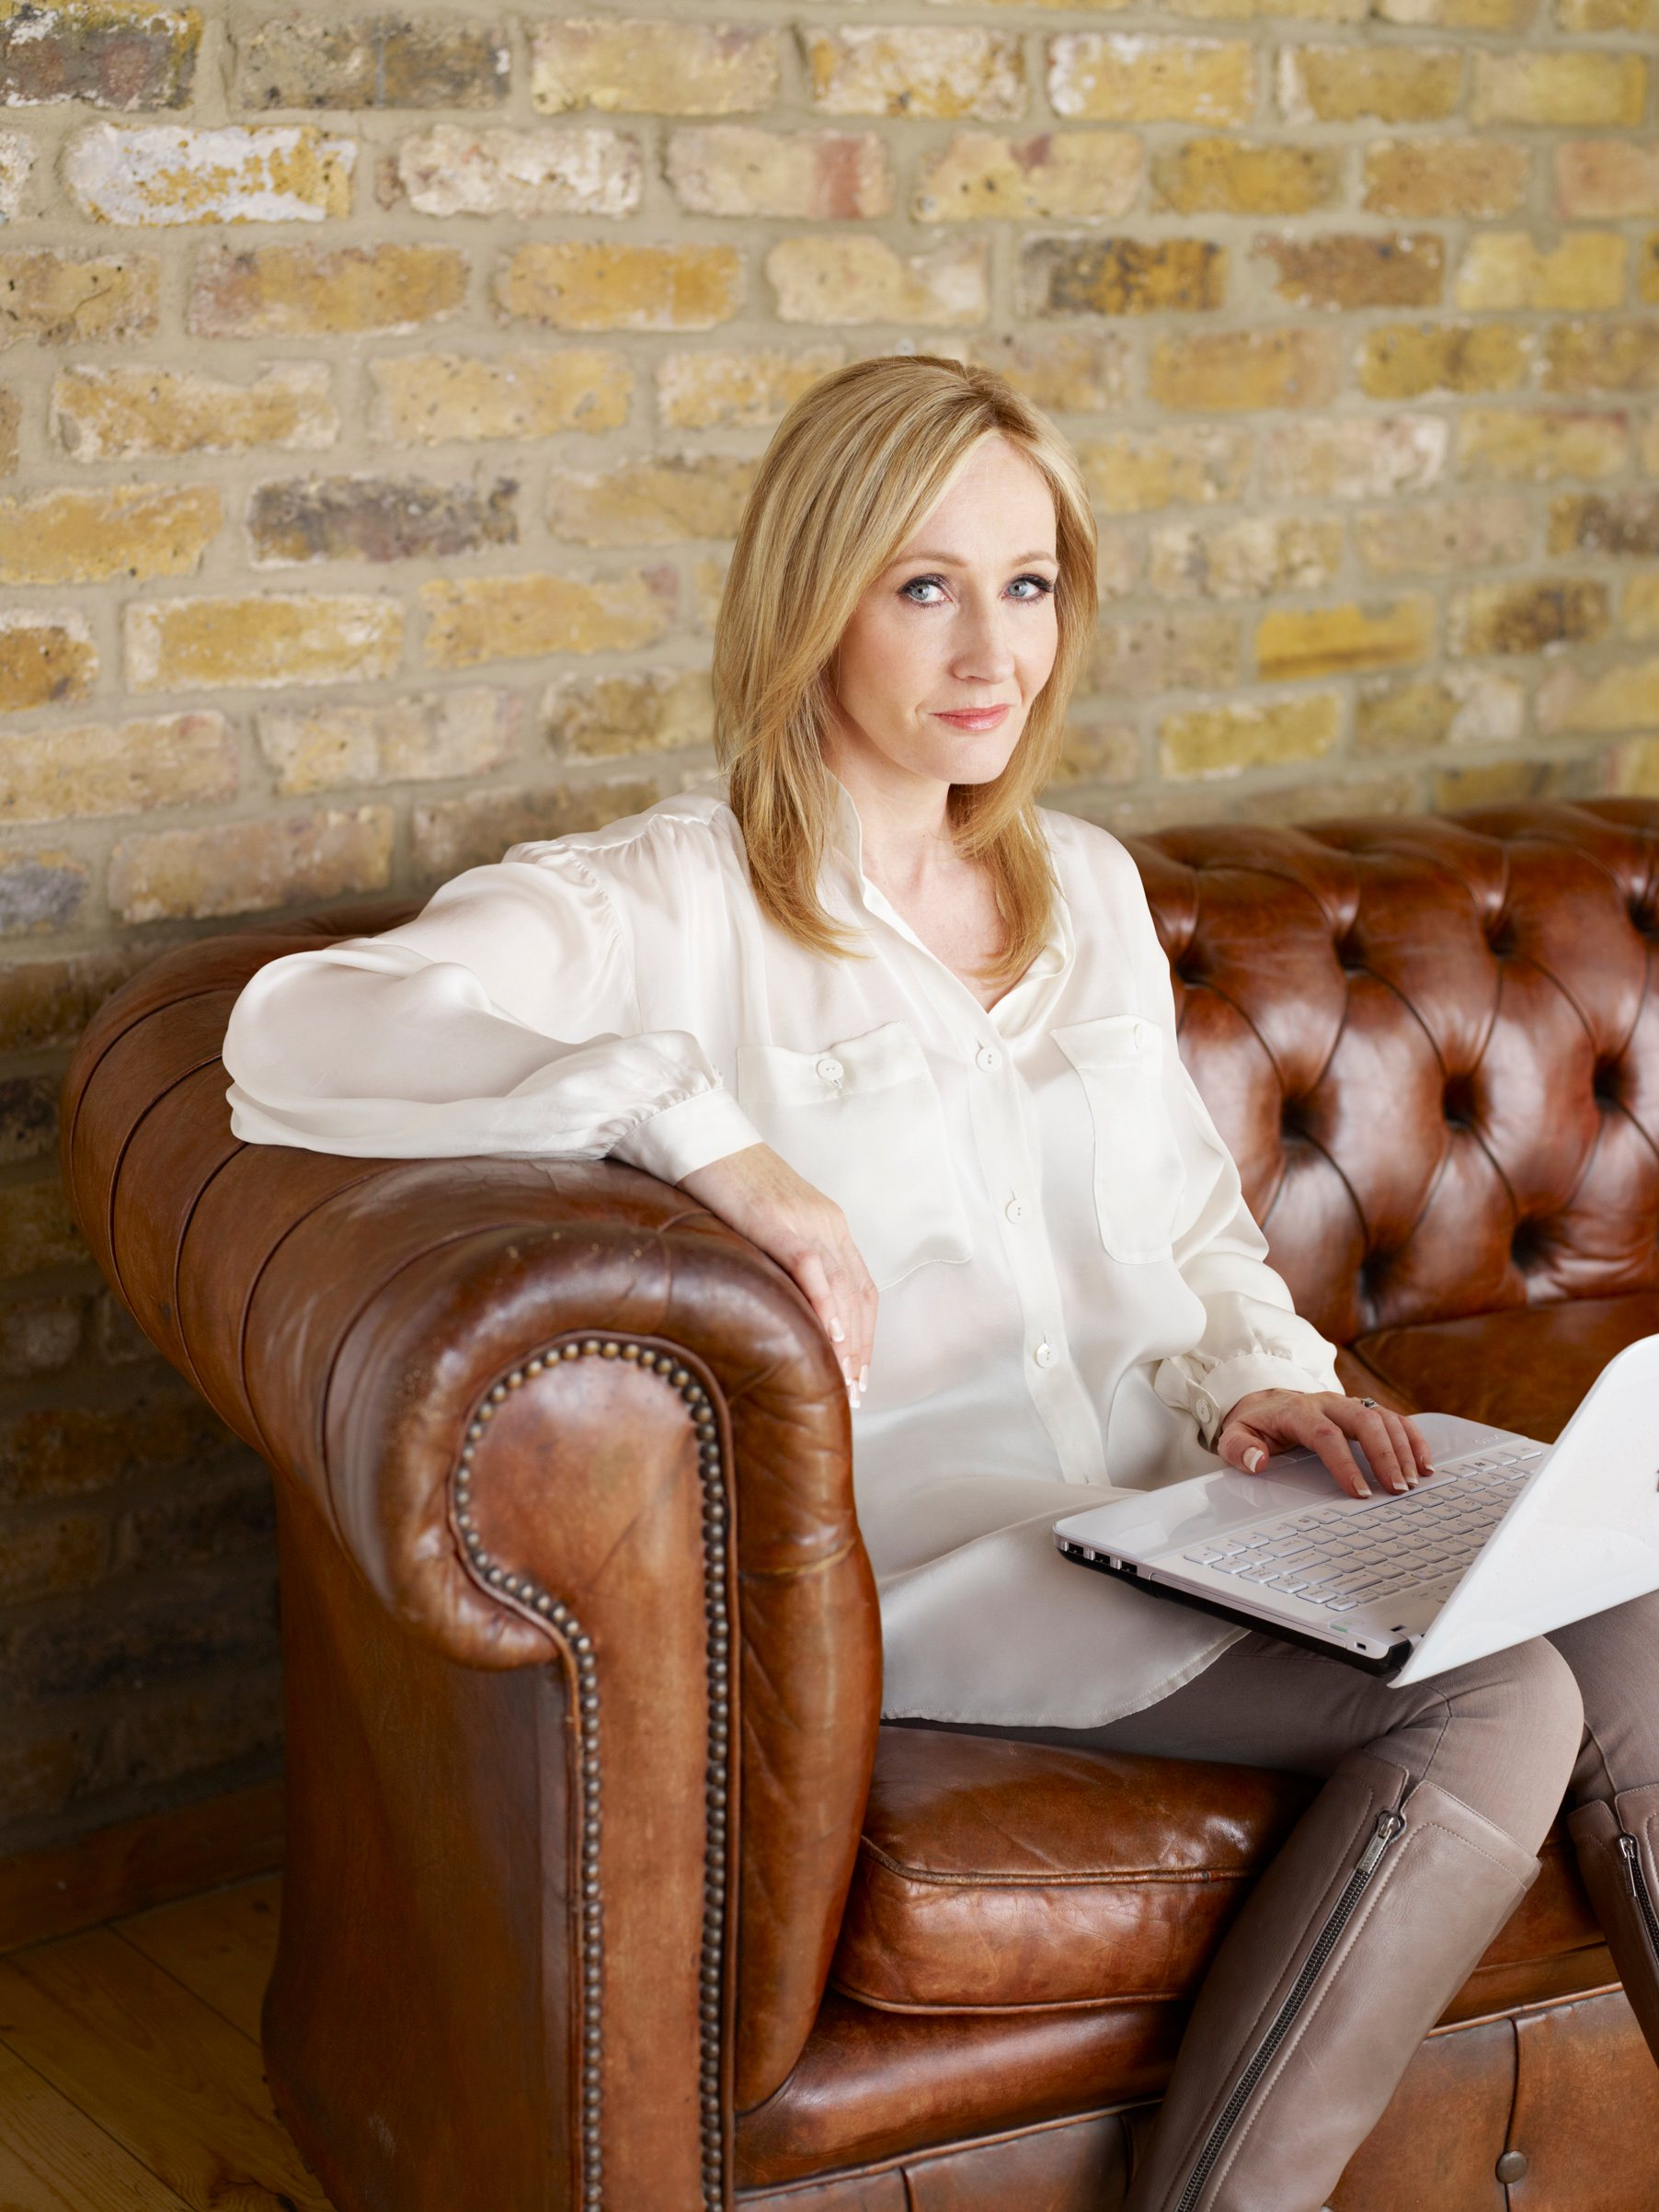 J.K. Rowling 2011 Pottermore